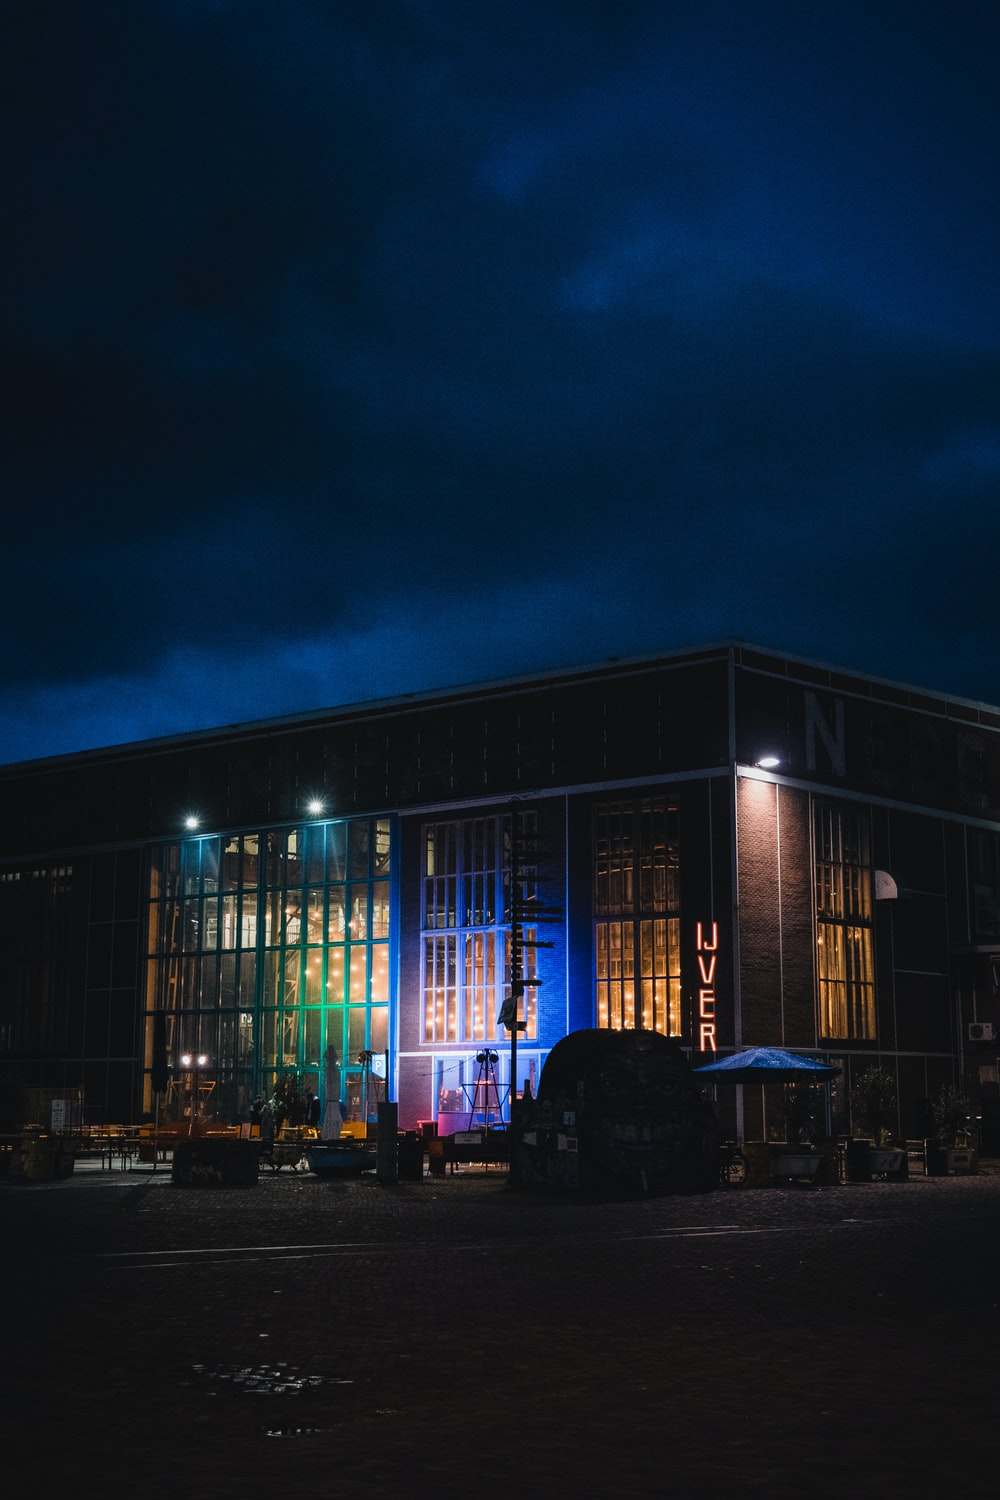 brown concrete building during nighttime